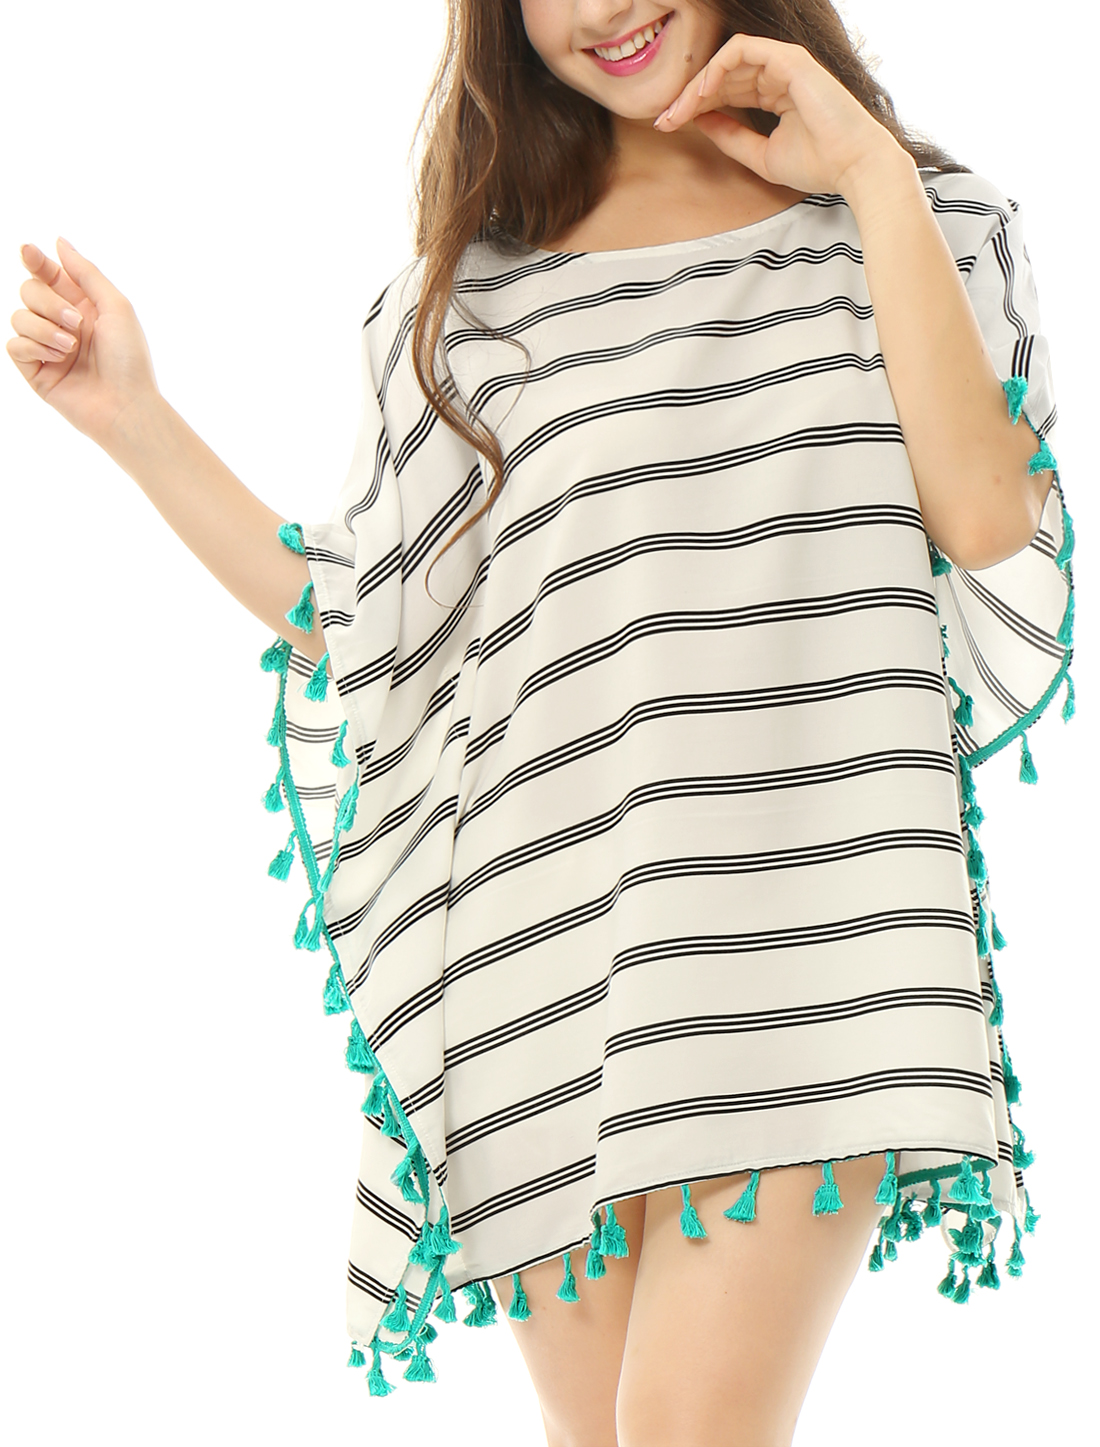 Women Tassel Trim Loose Stripes Cover Up Tunic Top White XL